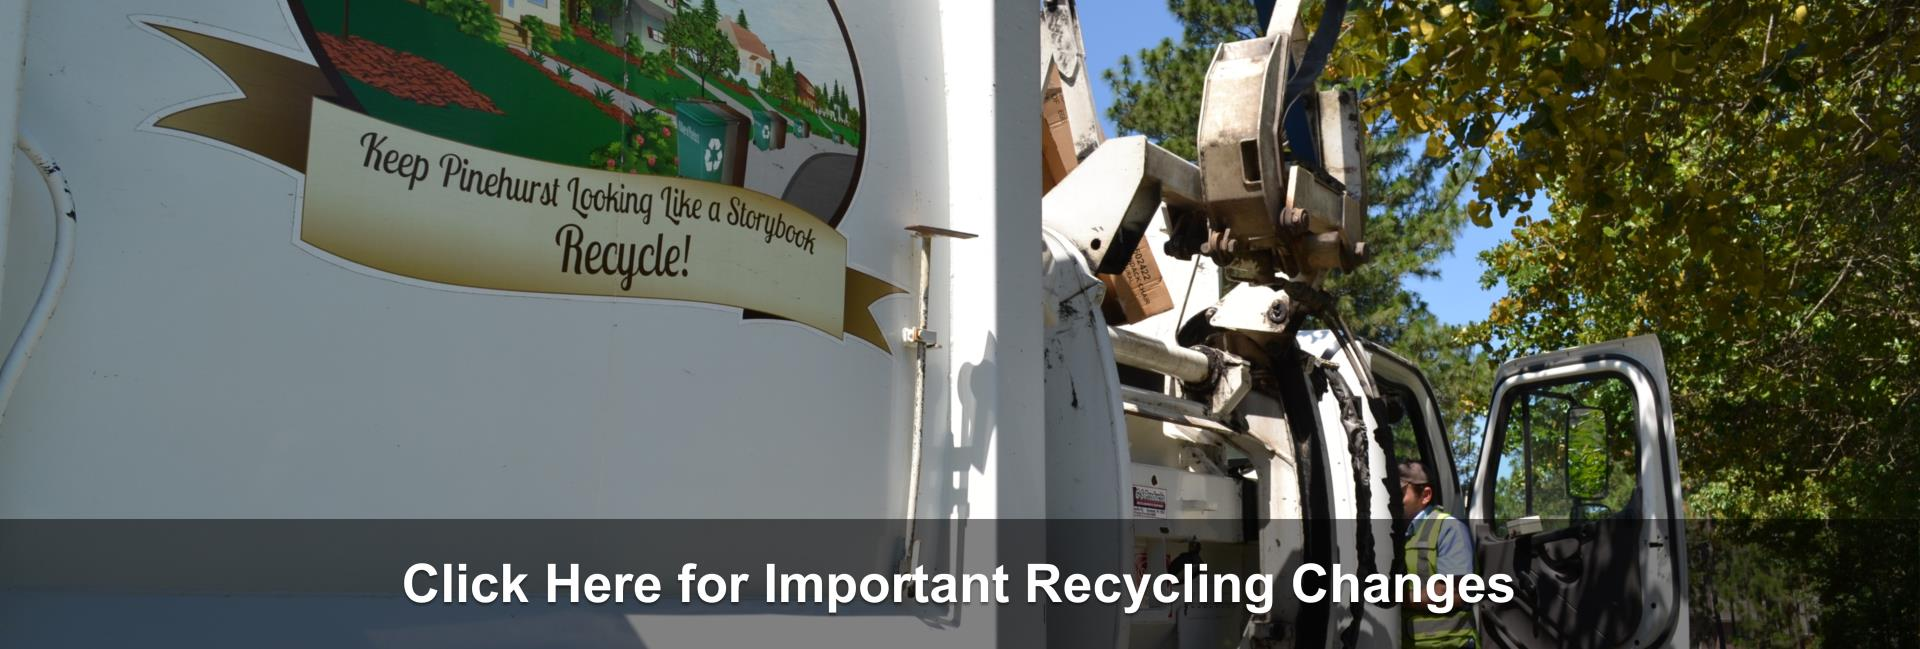 Recycling Changes 2019